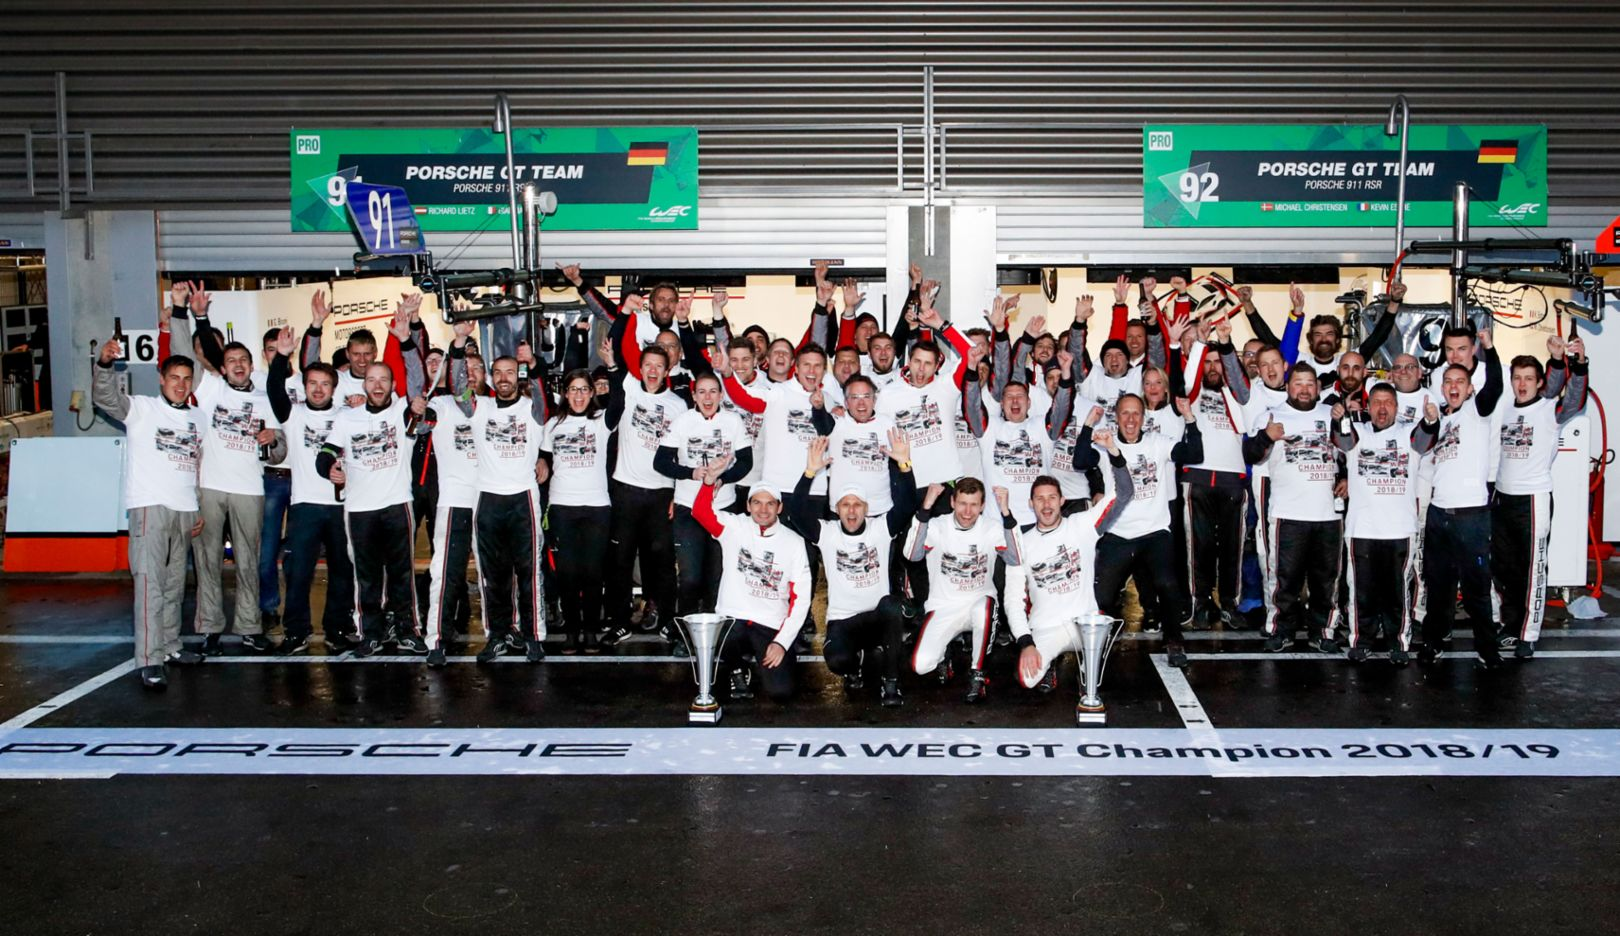 Porsche GT Team, World champion FIA-WEC, Spa-Franchorchamps, 2019, Porsche AG